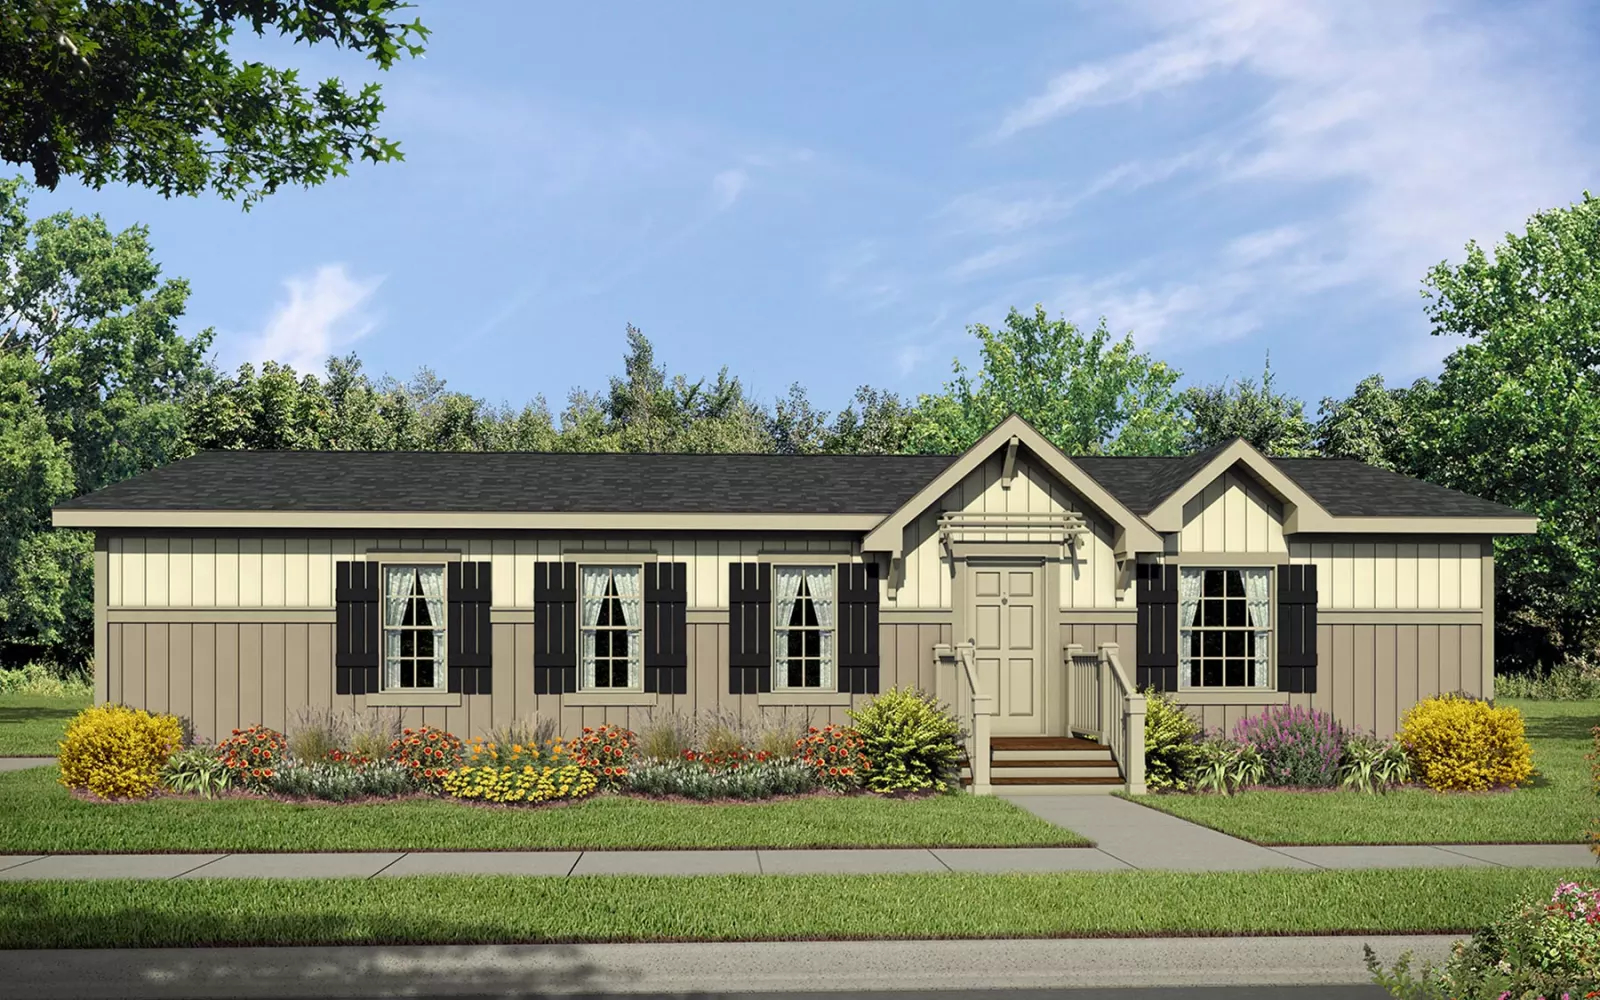 Image of the Champion Homes 4523C Manufactured Home in the Craftsman Series